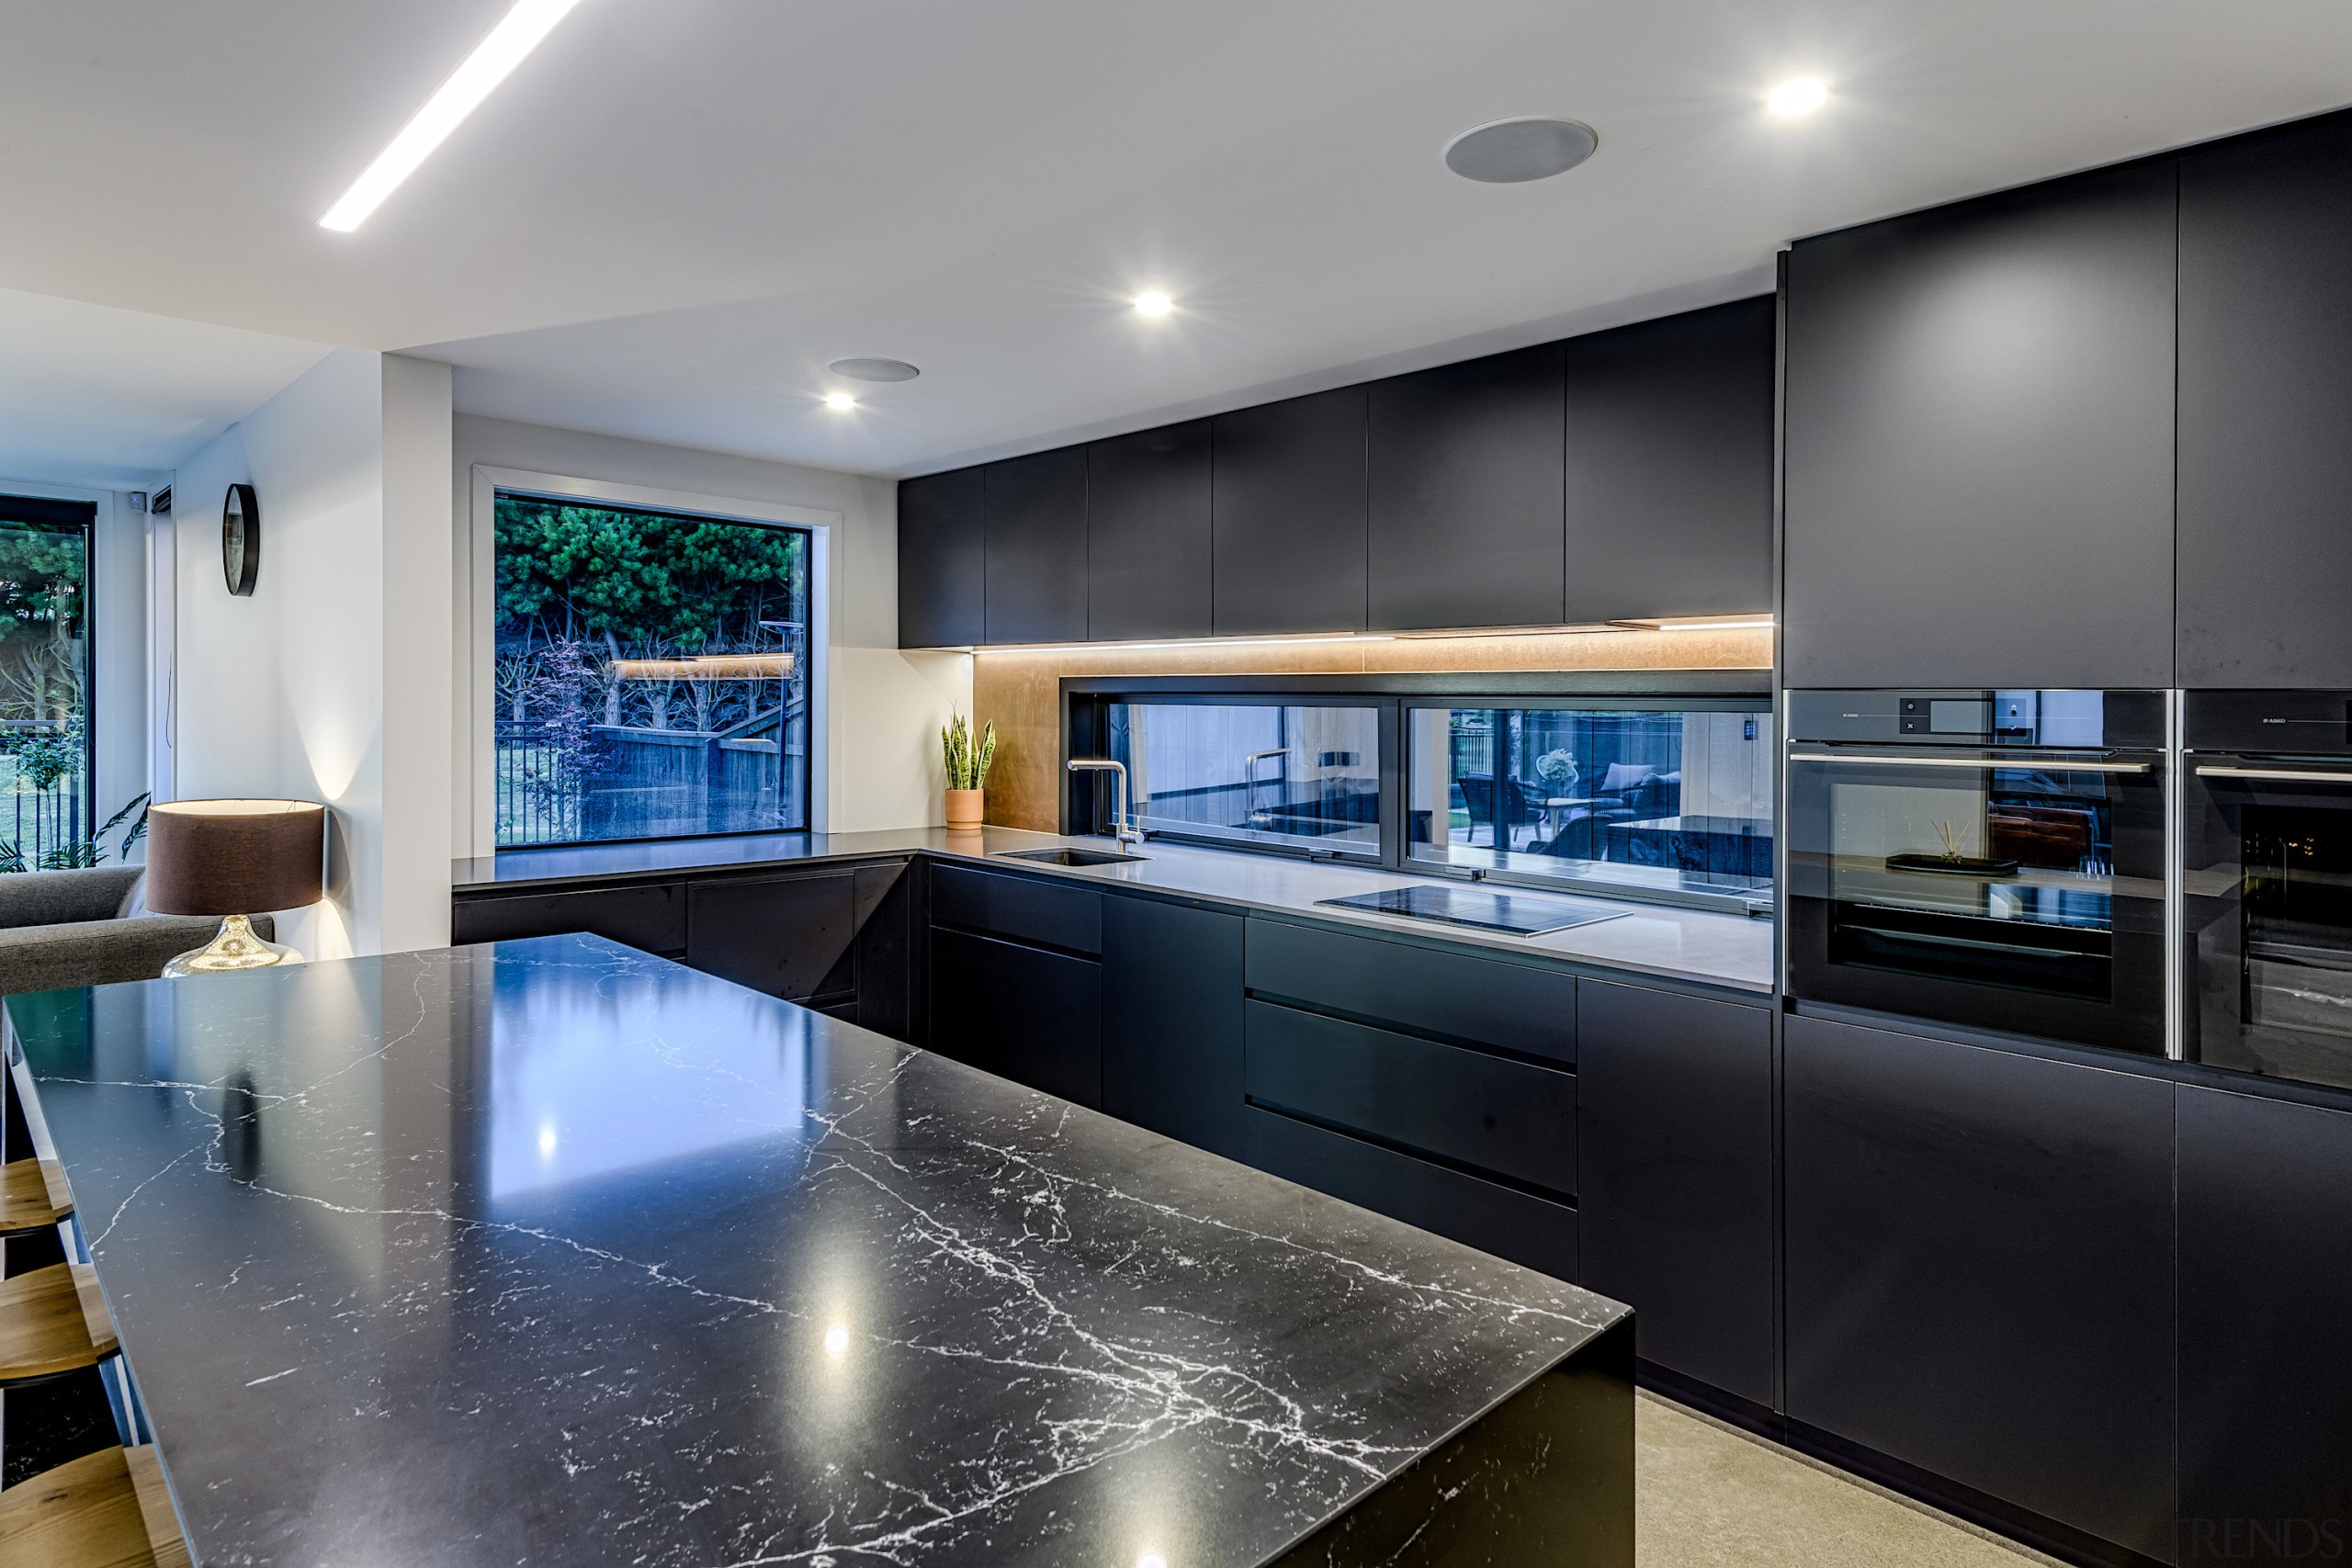 To make the island a standout feature, Kirsty architecture, building, cabinetry, ceiling, countertop, design, floor, flooring, furniture, glass, home, house, interior design, kitchen, light fixture, lighting, living room, property, real estate, room, table, gray, black